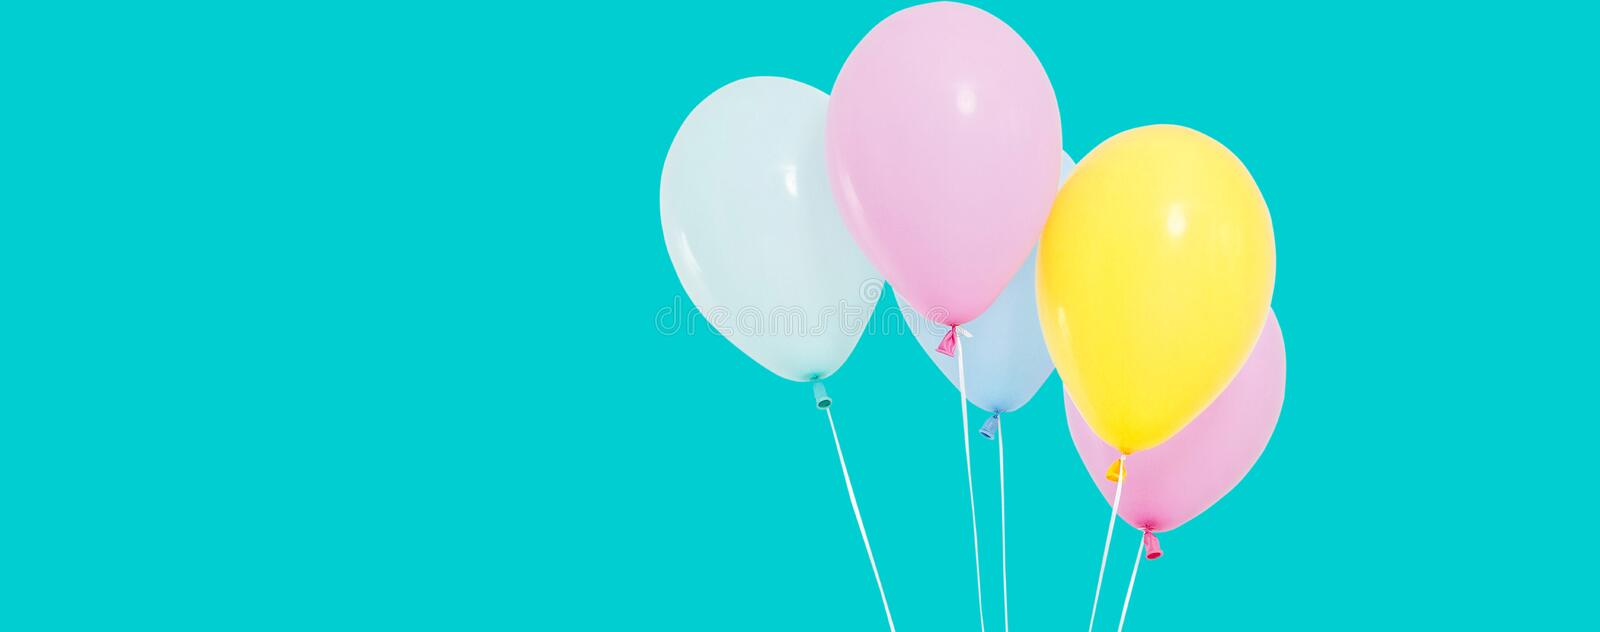 Bunch of colorful balloons on background - copy space stock image